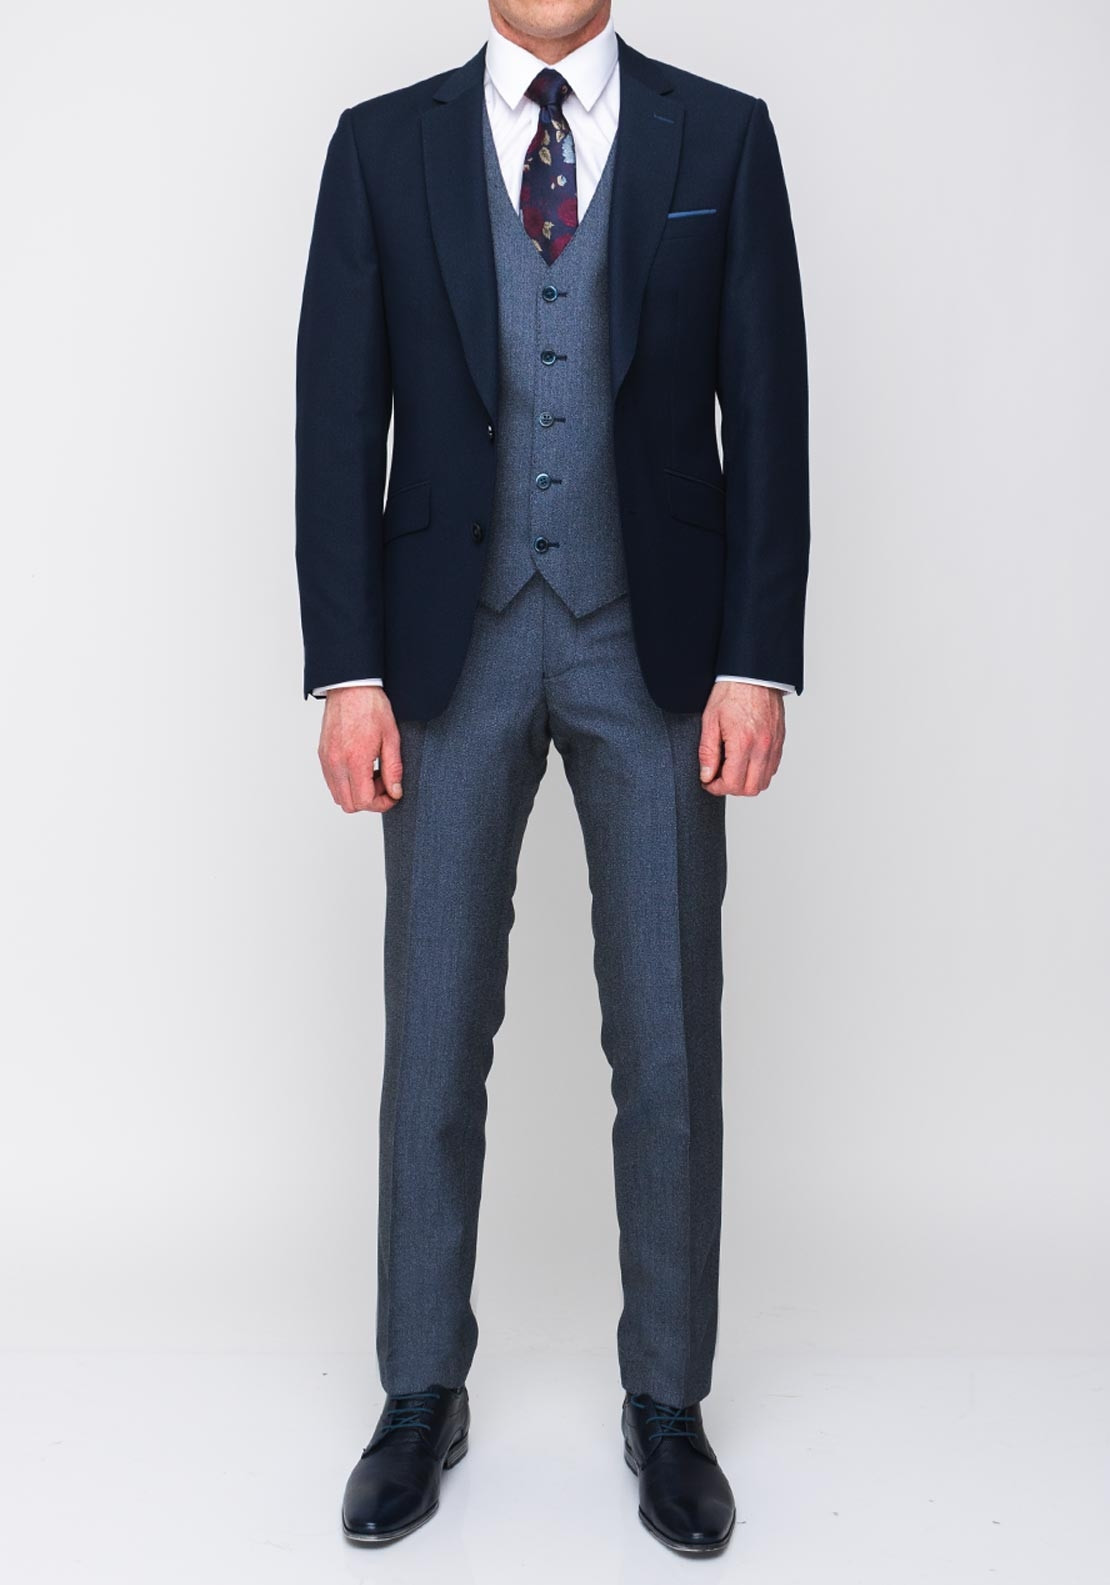 17bd1d6bc8d9 Remus Uomo Palucci Tapered Fit Three Piece Suit, Navy | McElhinneys